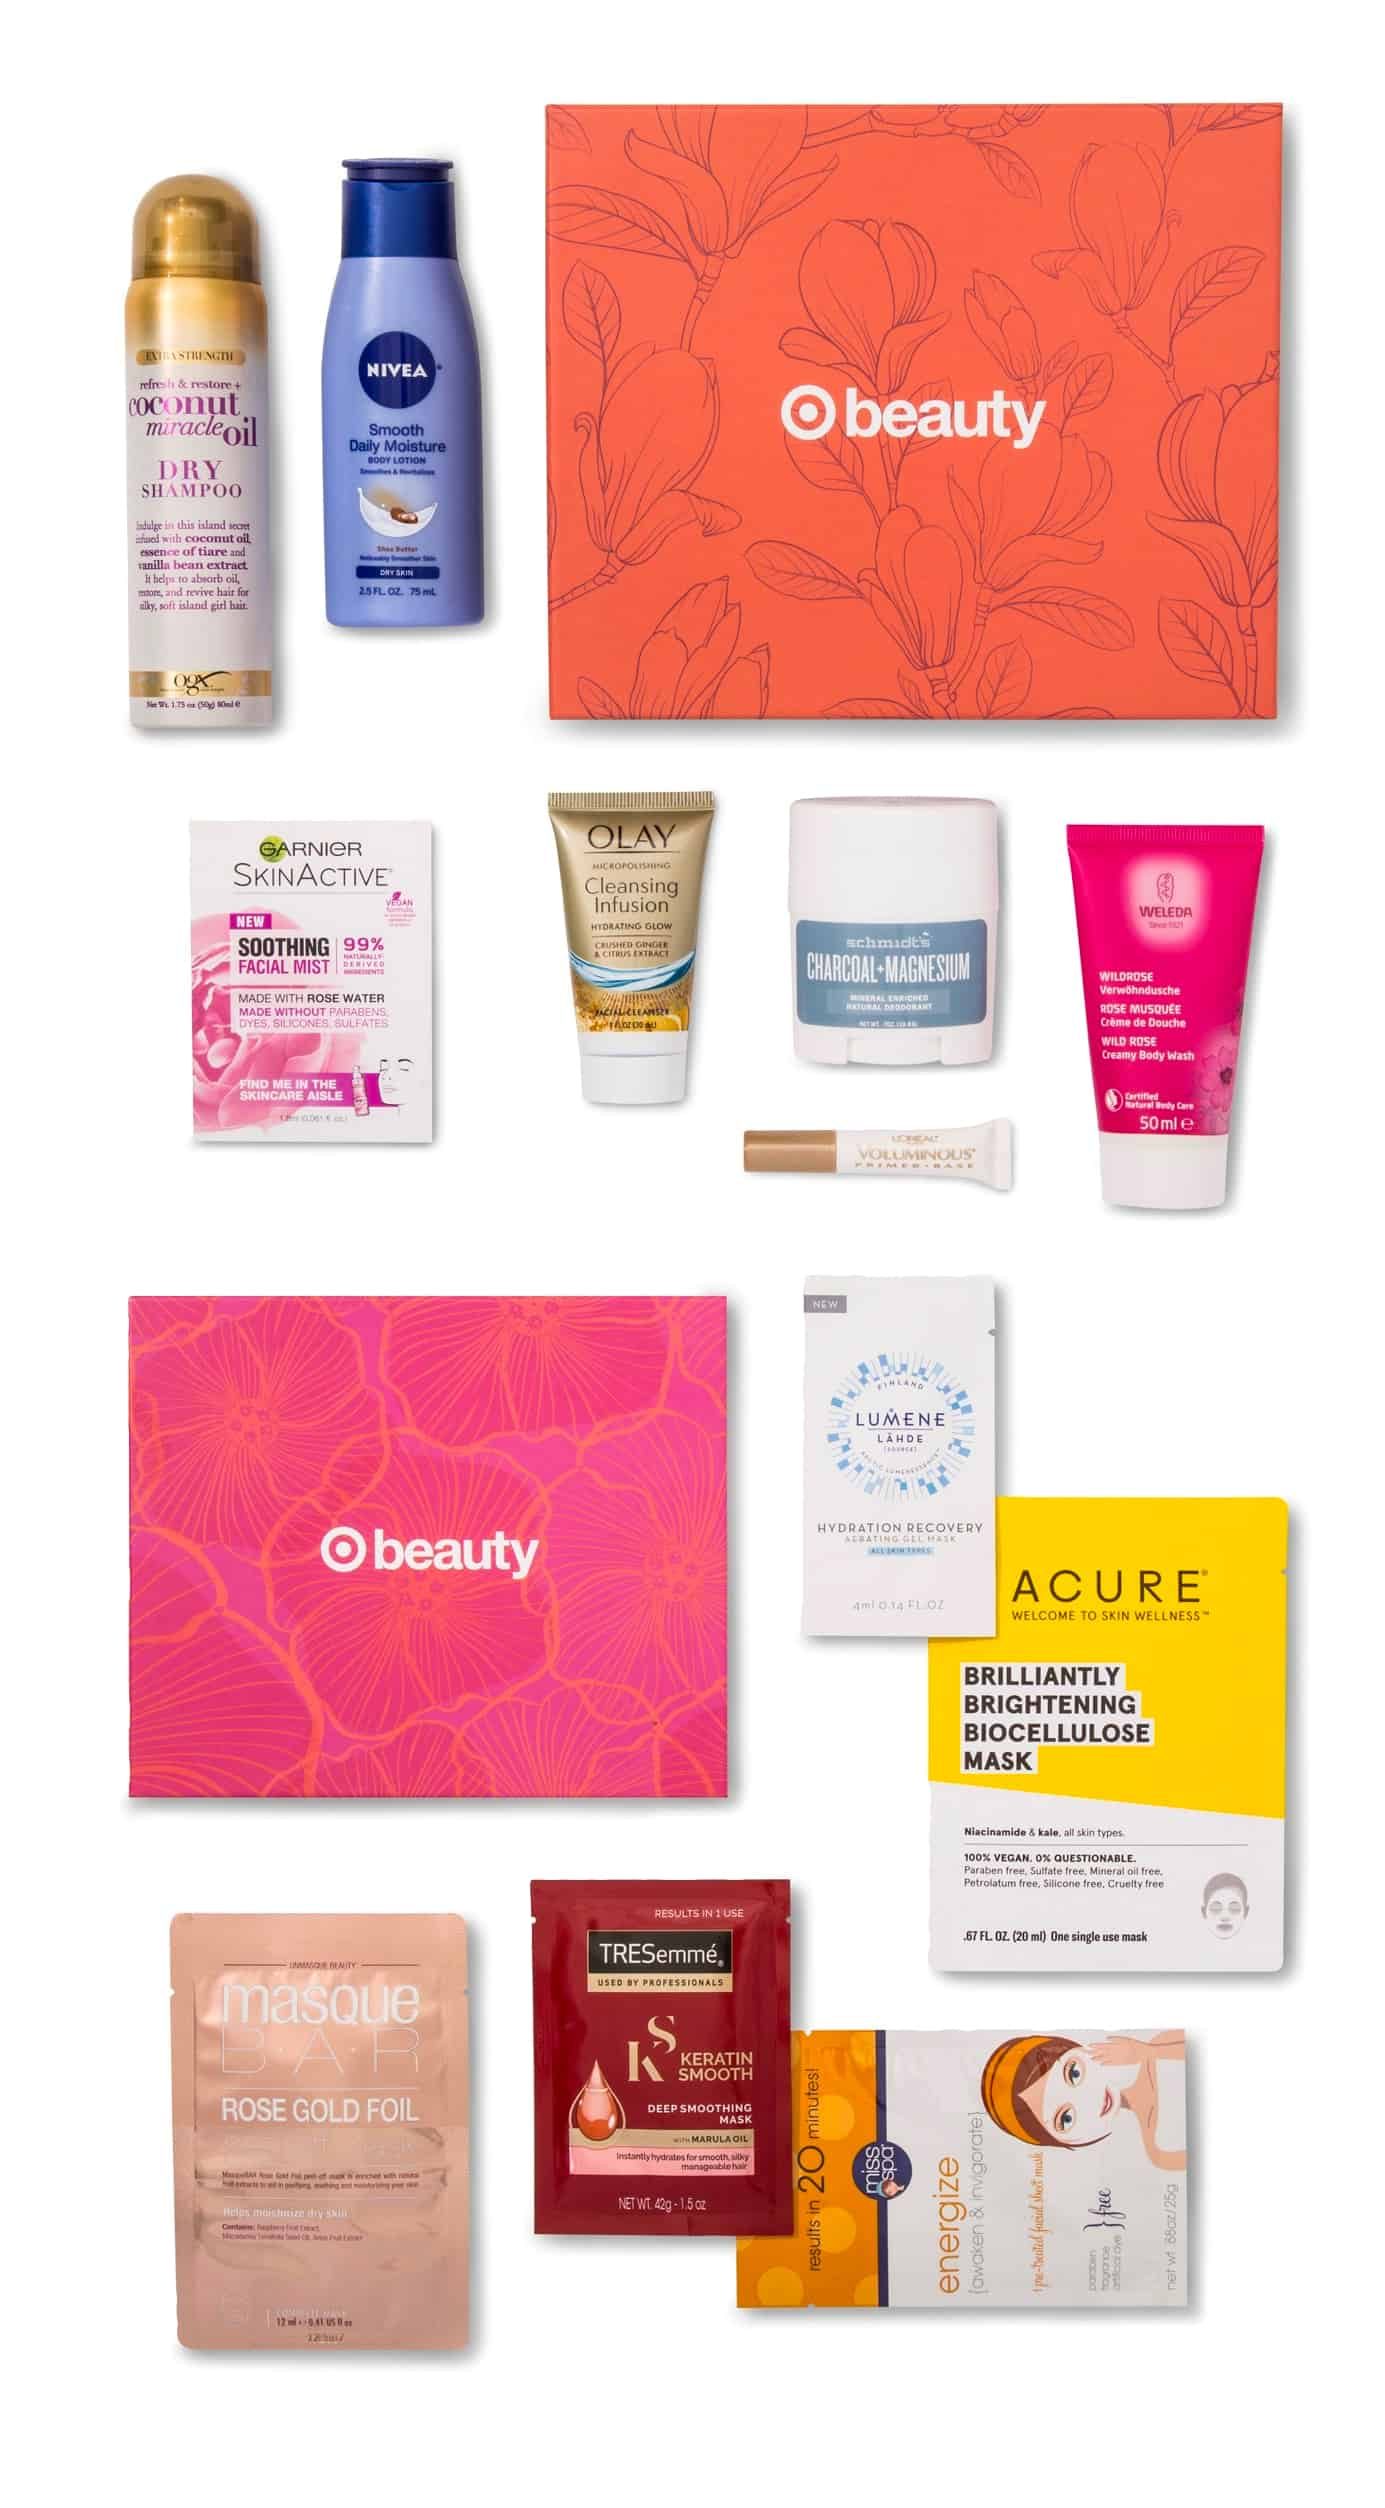 September 2018 Target Beauty Boxes Available Now!